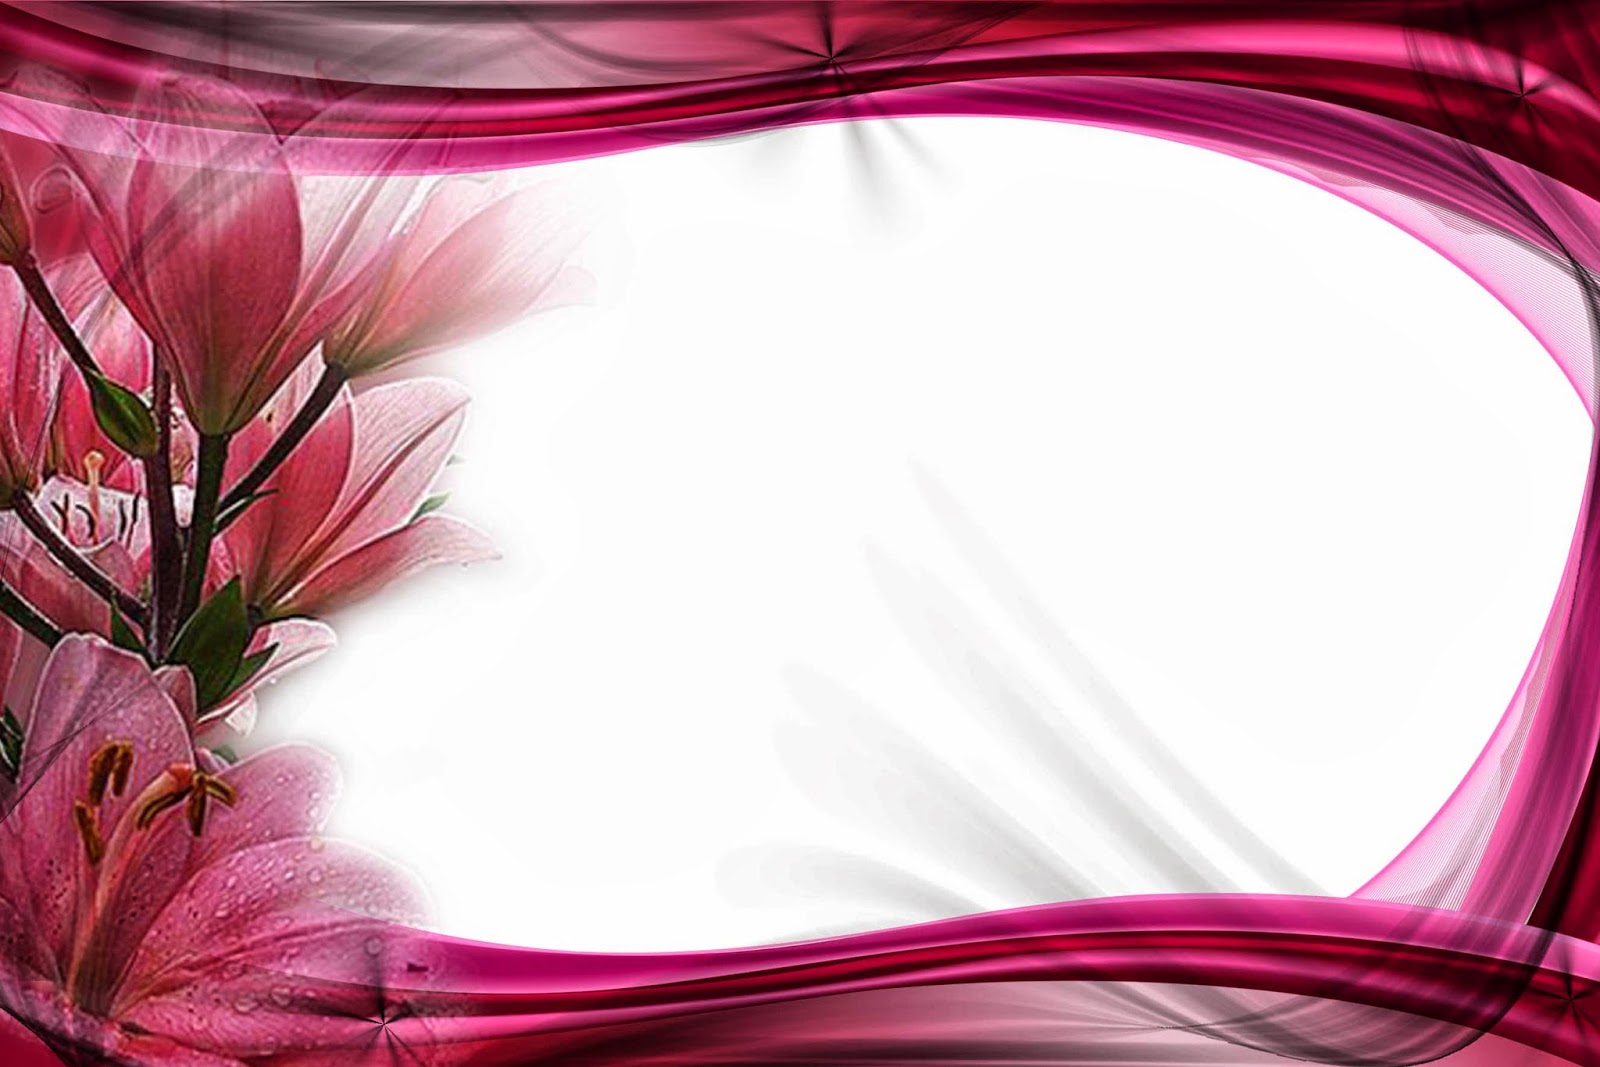 Floral Frame Wallpapers High Quality | Download Free